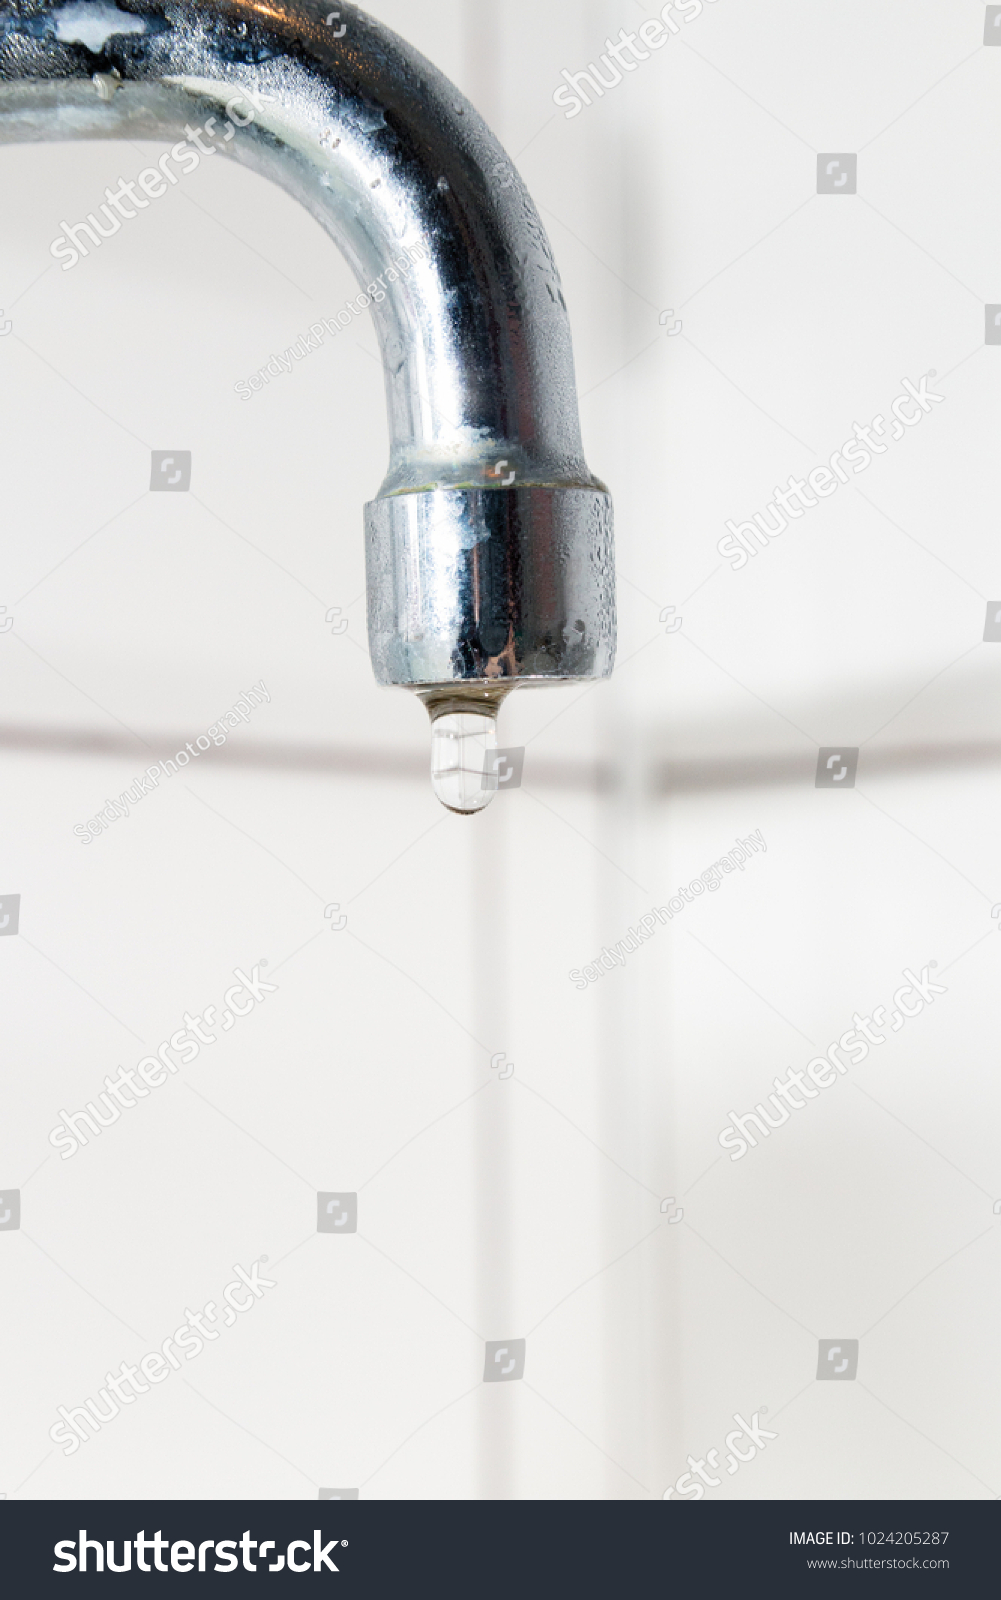 Bathroom Faucet No Water Kitchen Faucet Stock Photo 1024205287 ...